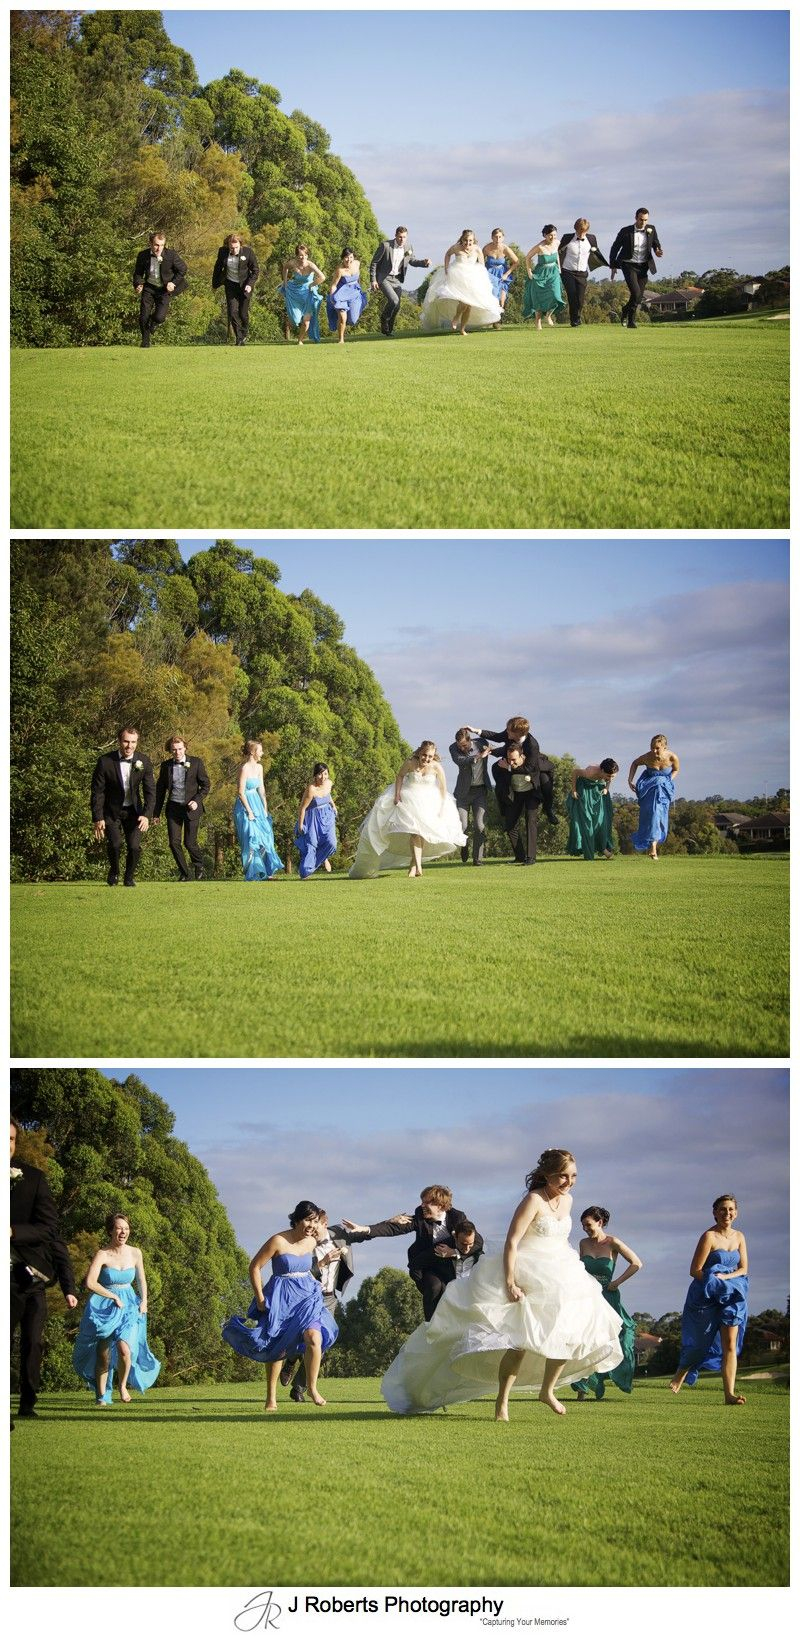 Bridal party running race - wedding photography sydney